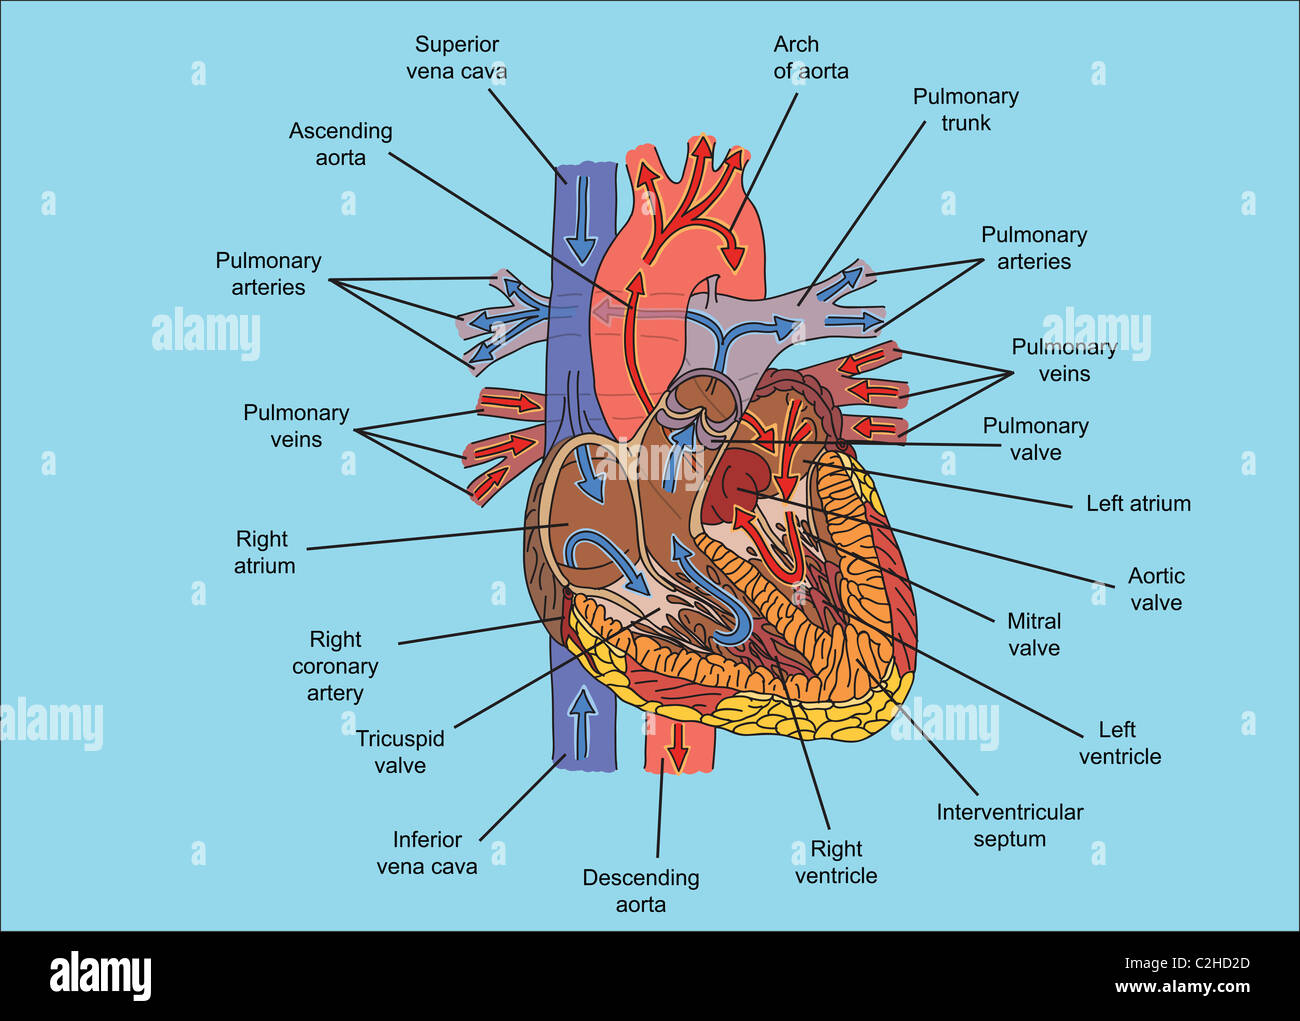 Structure Of Human Heart And Blood Flow Illustration Stock Photo